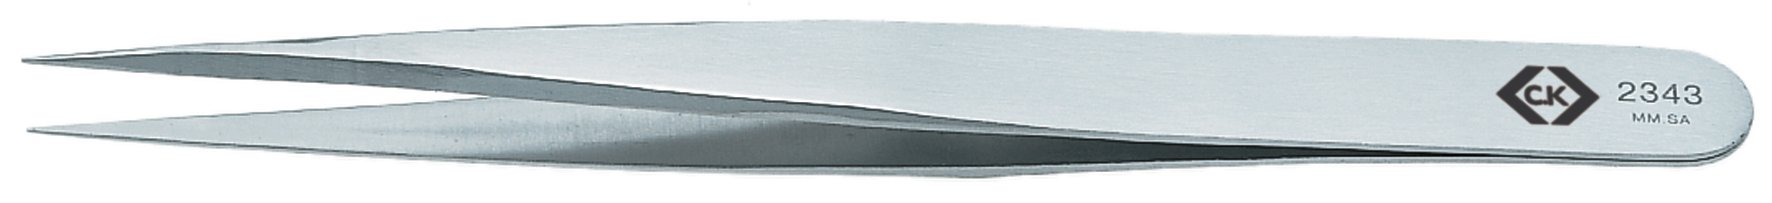 C. K Tools T2343 Stainless Steel Precision Tweezers, Fine, Straight Tips, 5-Inch OAL